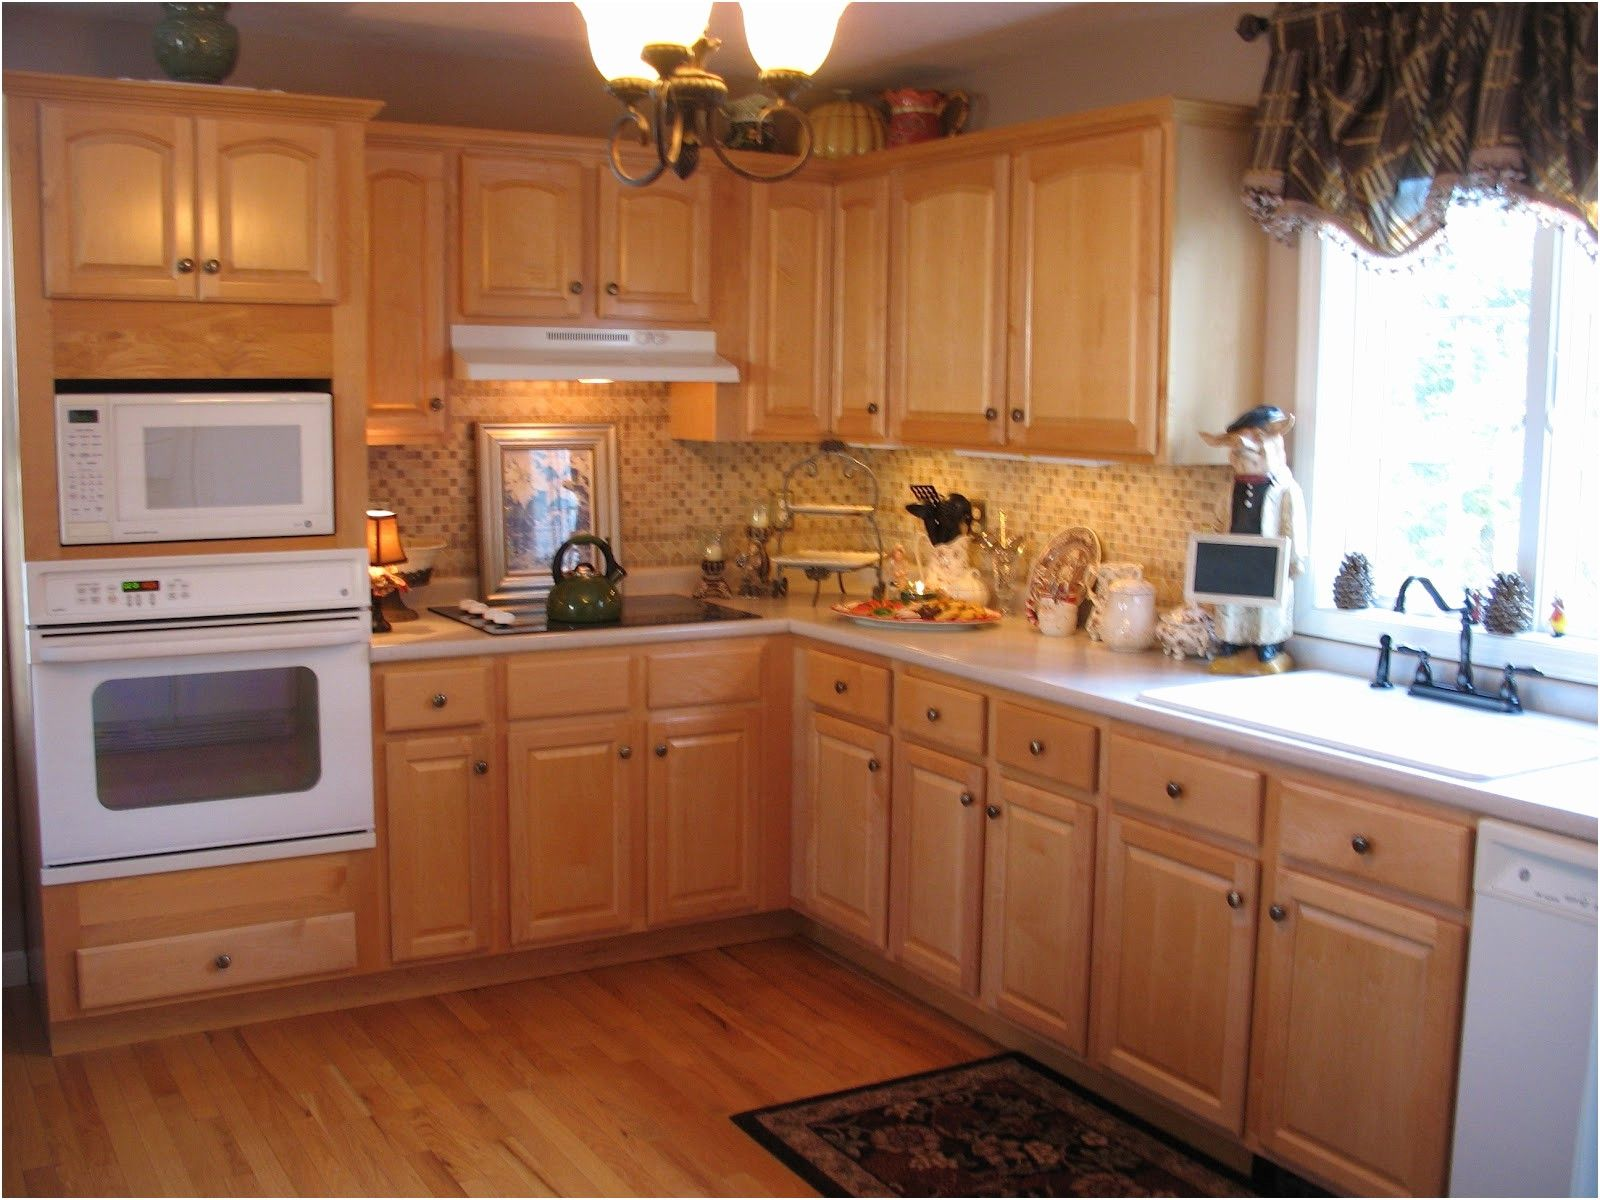 2019 Kitchens With White Appliances And Oak Cabinets Kitchen Cabinets Countertops Idea Used Kitchen Cabinets Cost Of Kitchen Cabinets Wooden Kitchen Cabinets